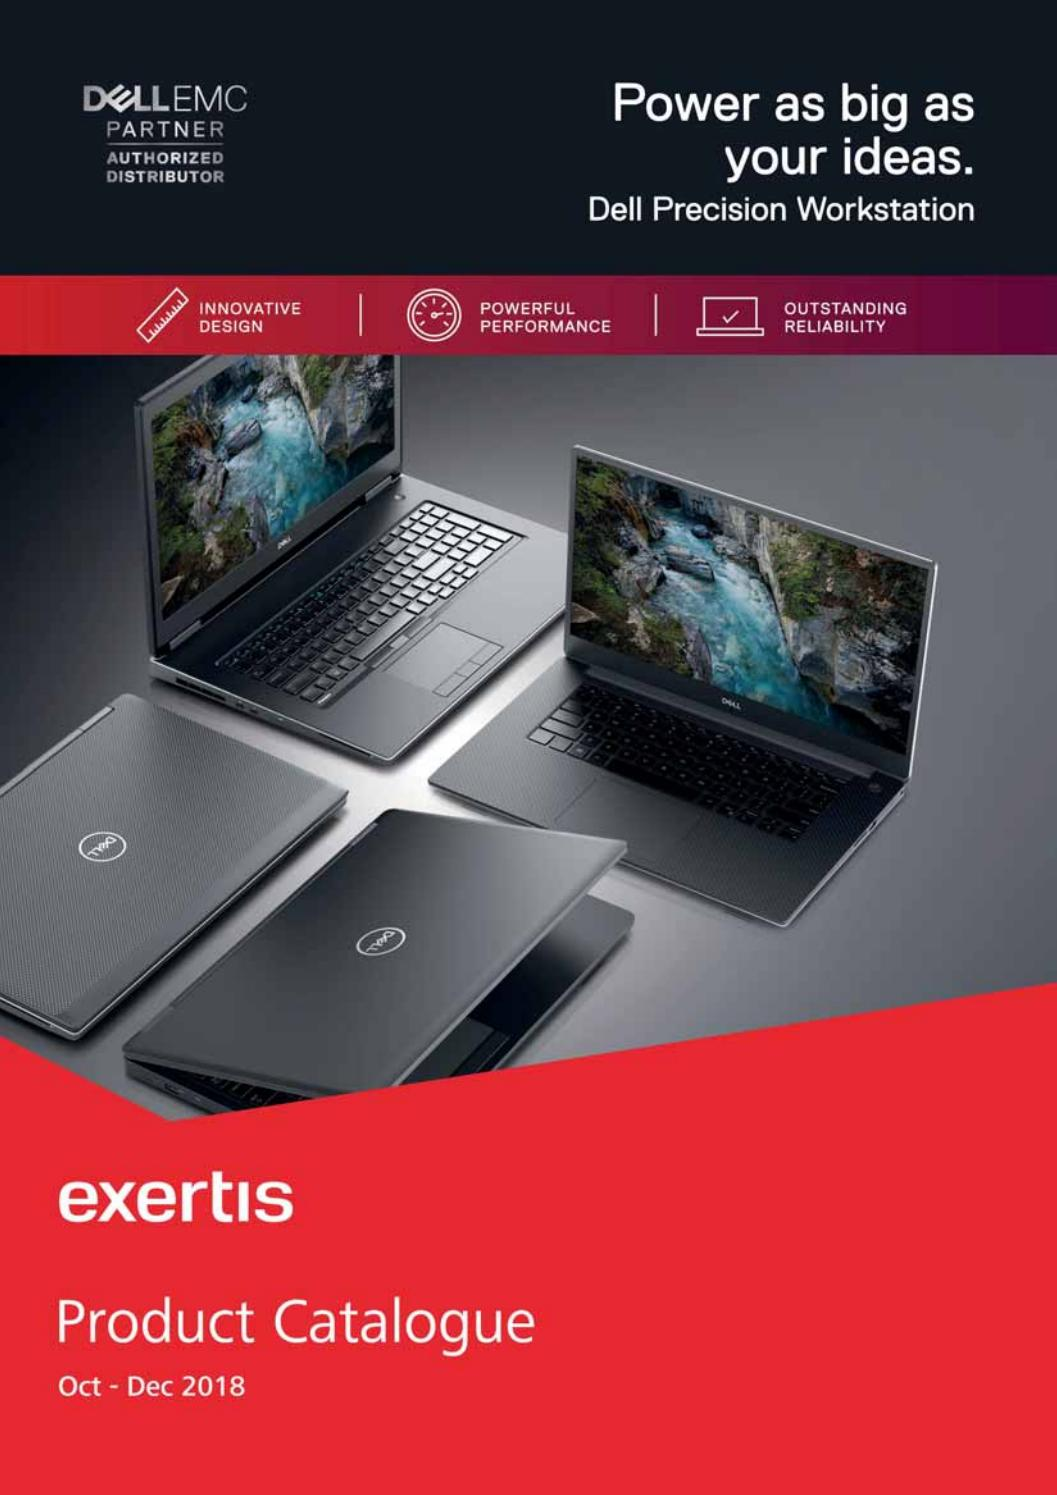 Exertis Product Catalogue Q3 Oct-Dec 2018 by ExertisMarketing - issuu cc230a0322